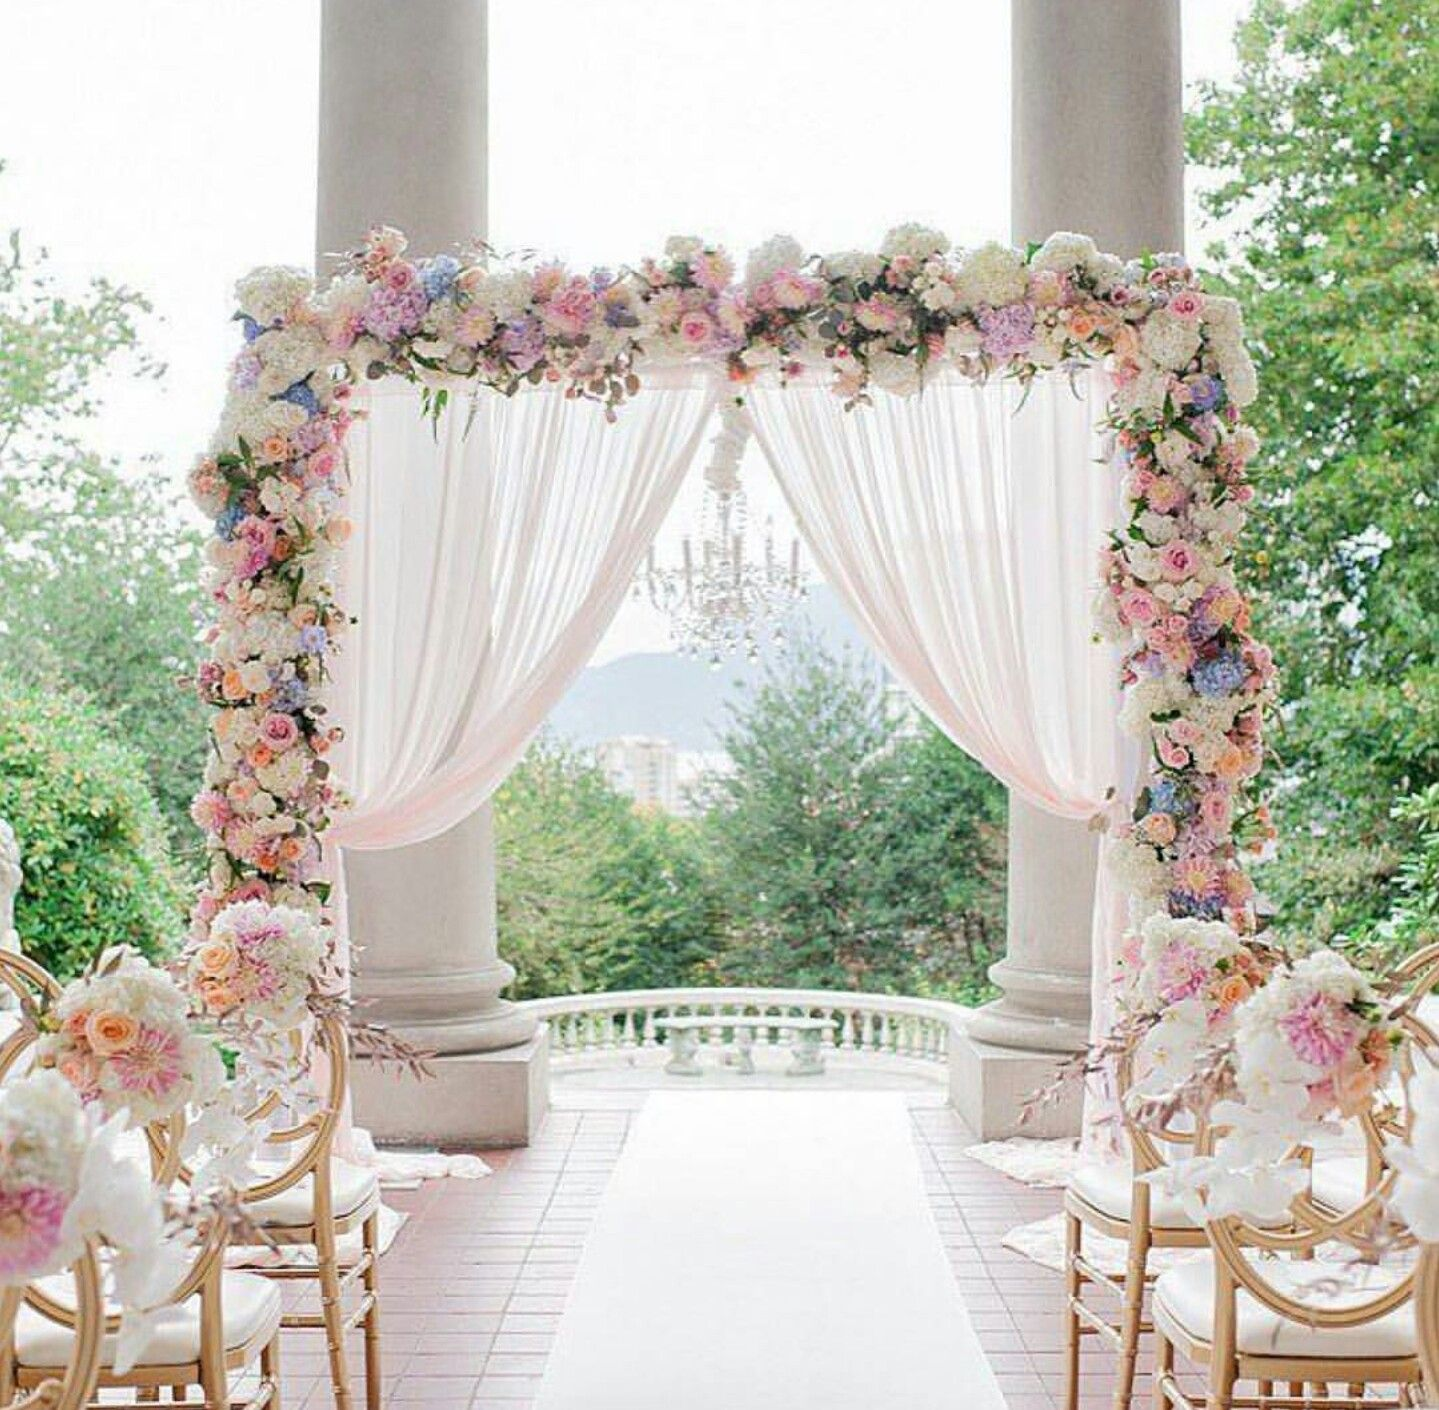 Wedding gate decoration ideas  Pin by Asmaa Salem on Event  Pinterest  Gate Gardens and Weddings